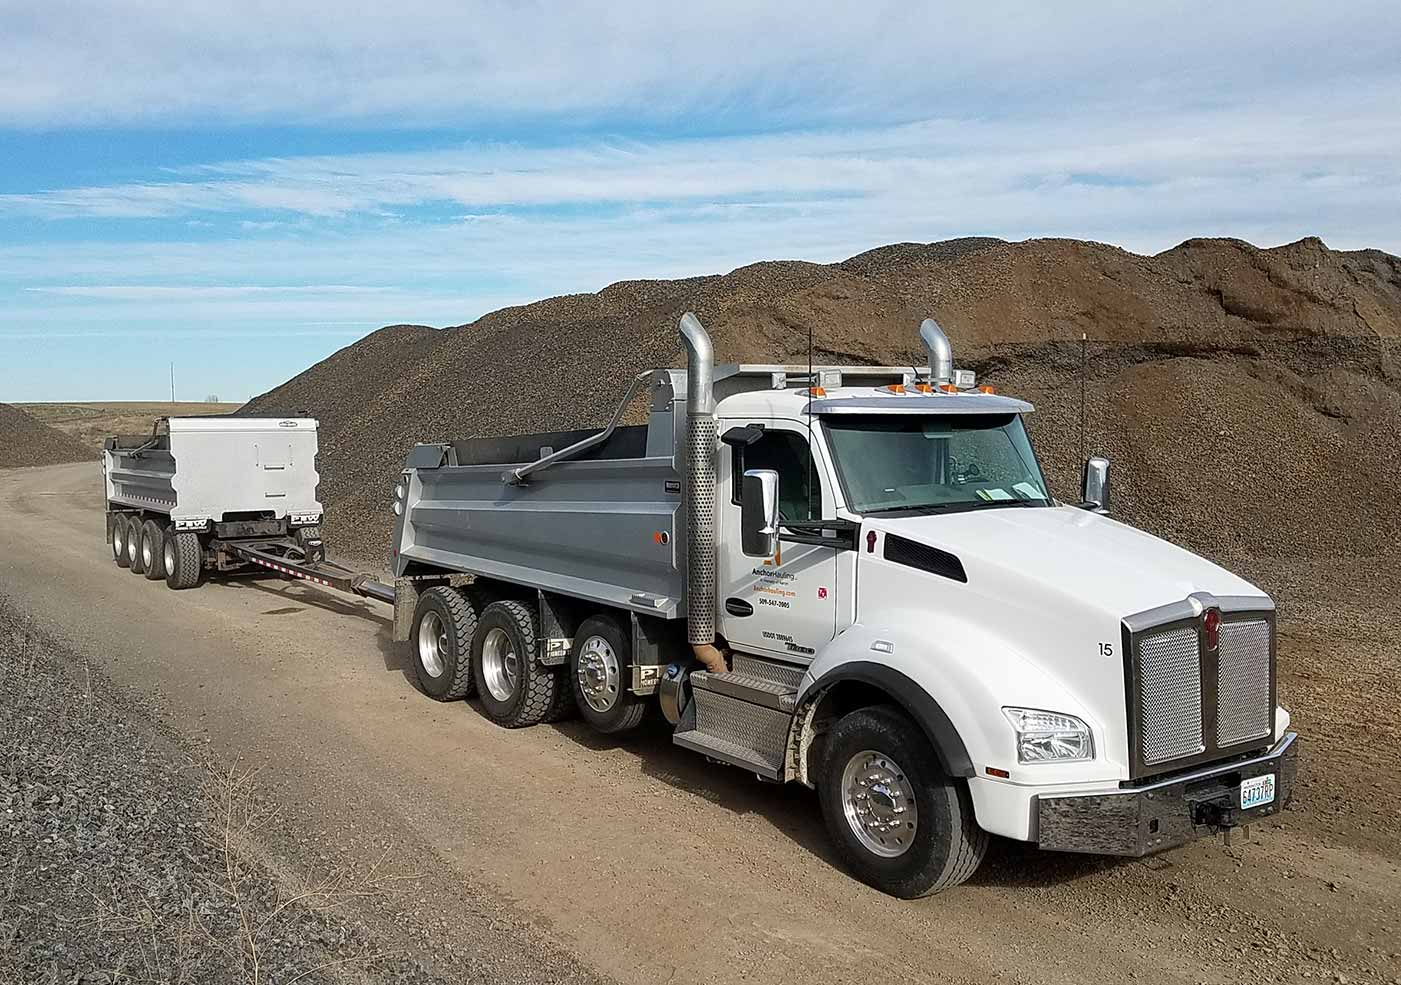 Anchor Hauling Semi and Pup for hauling gravel.